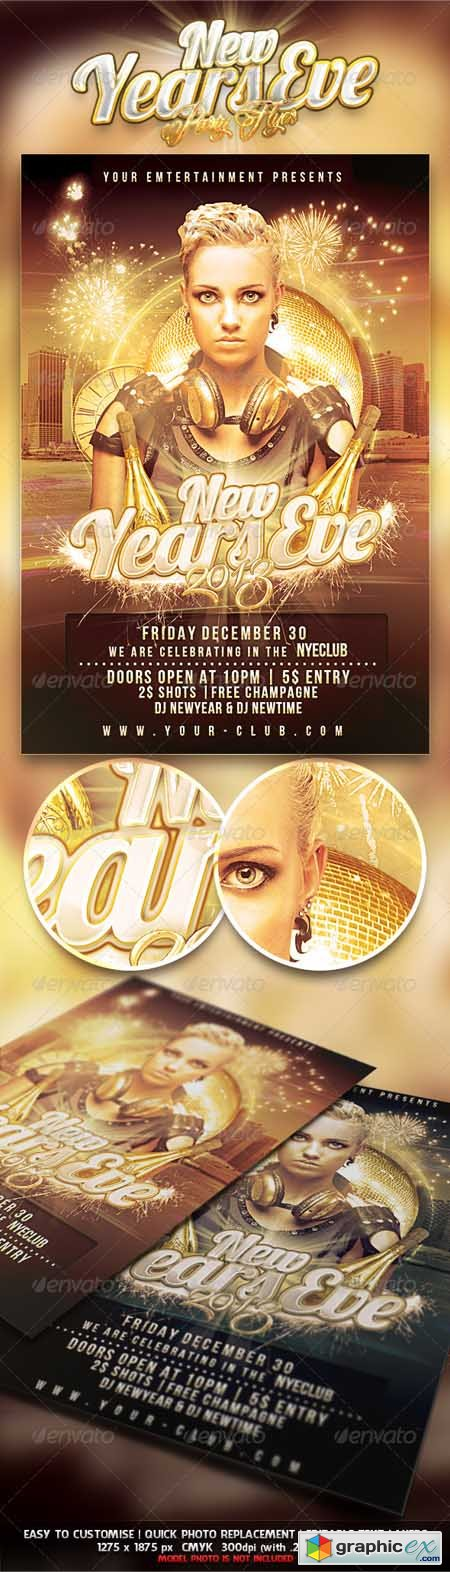 New Years Eve Party Flyer 3526475